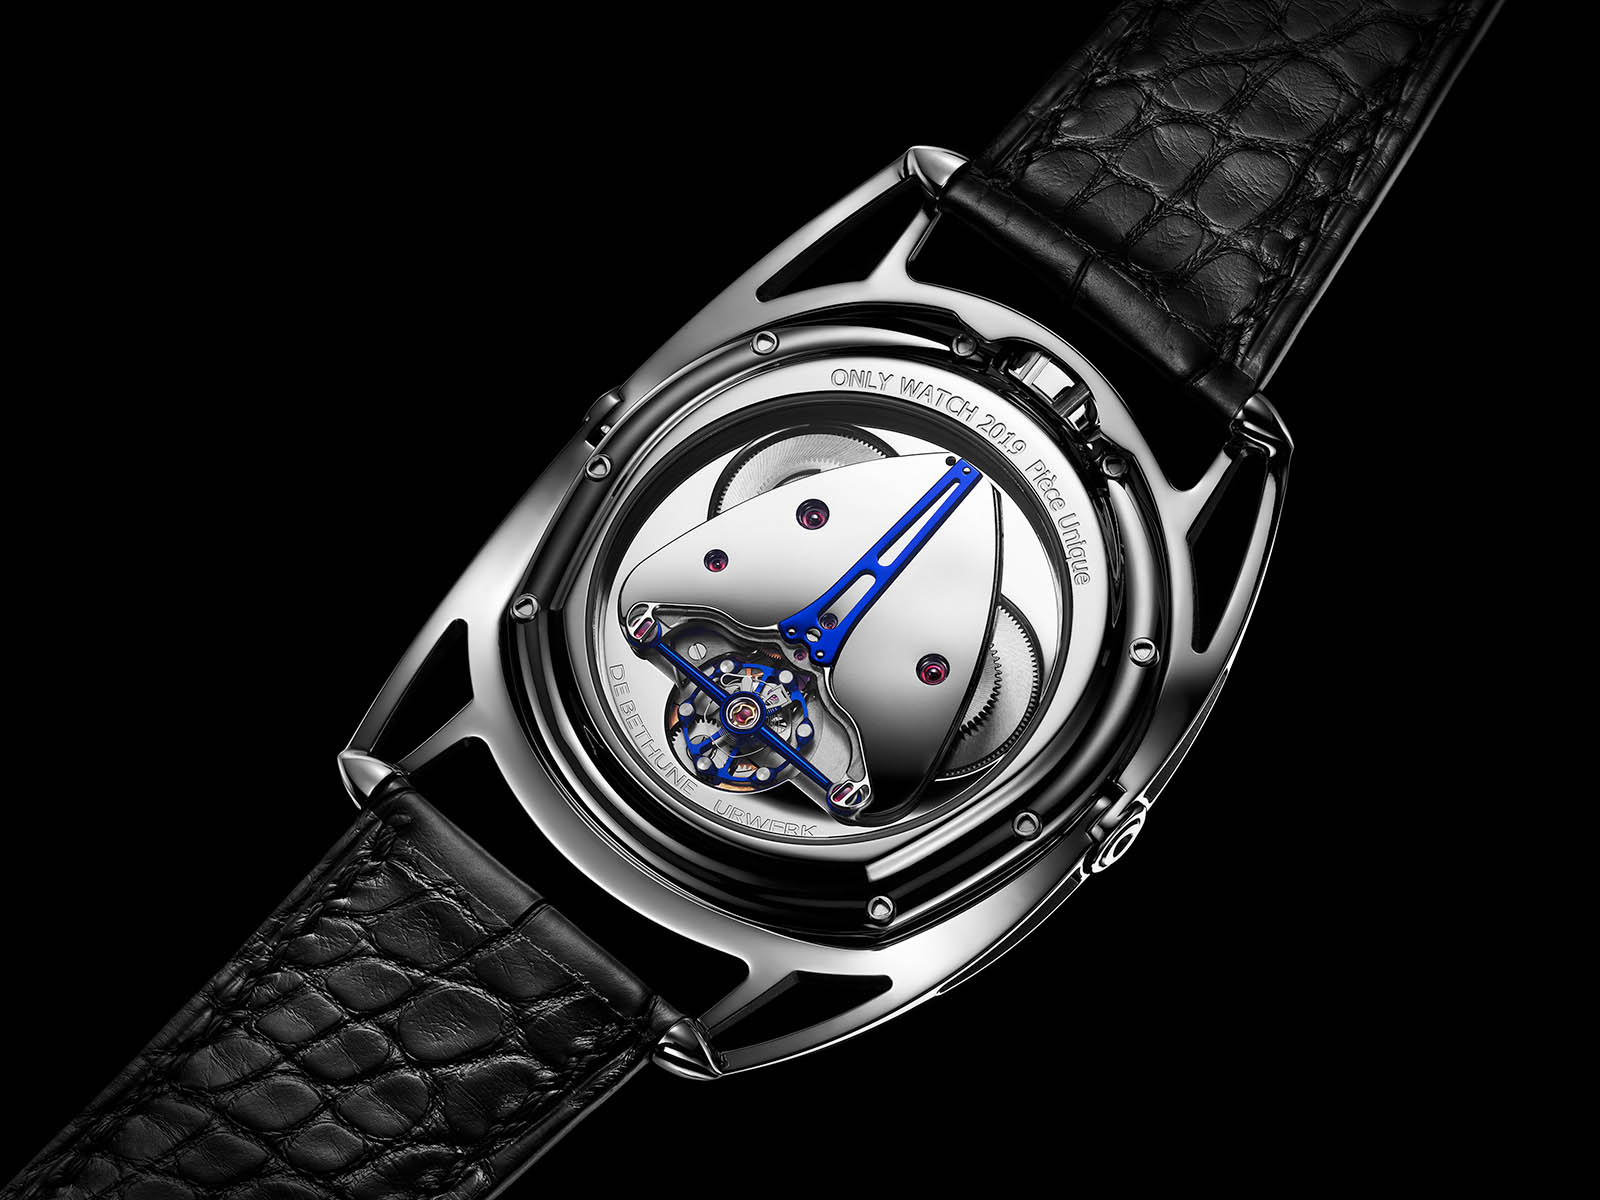 de-bethune-urwerk-only-watch-2019-6.jpg